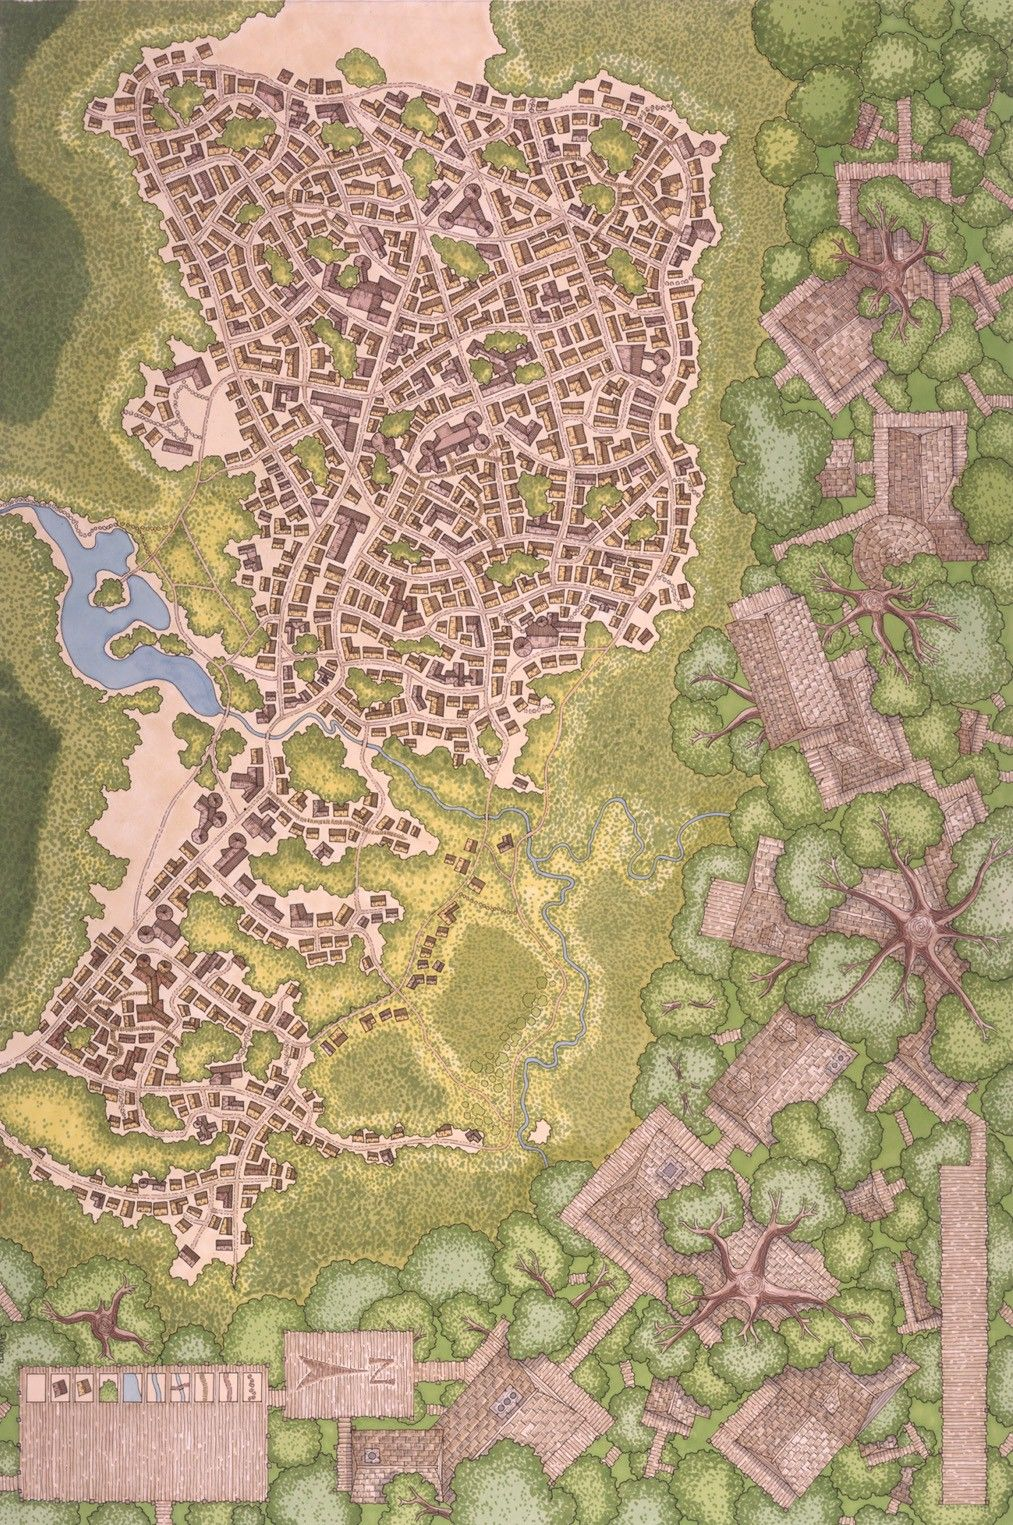 Http://www.wizards.com/dnd/images/mapofweek/Forested_City_1_150dpi.jpg